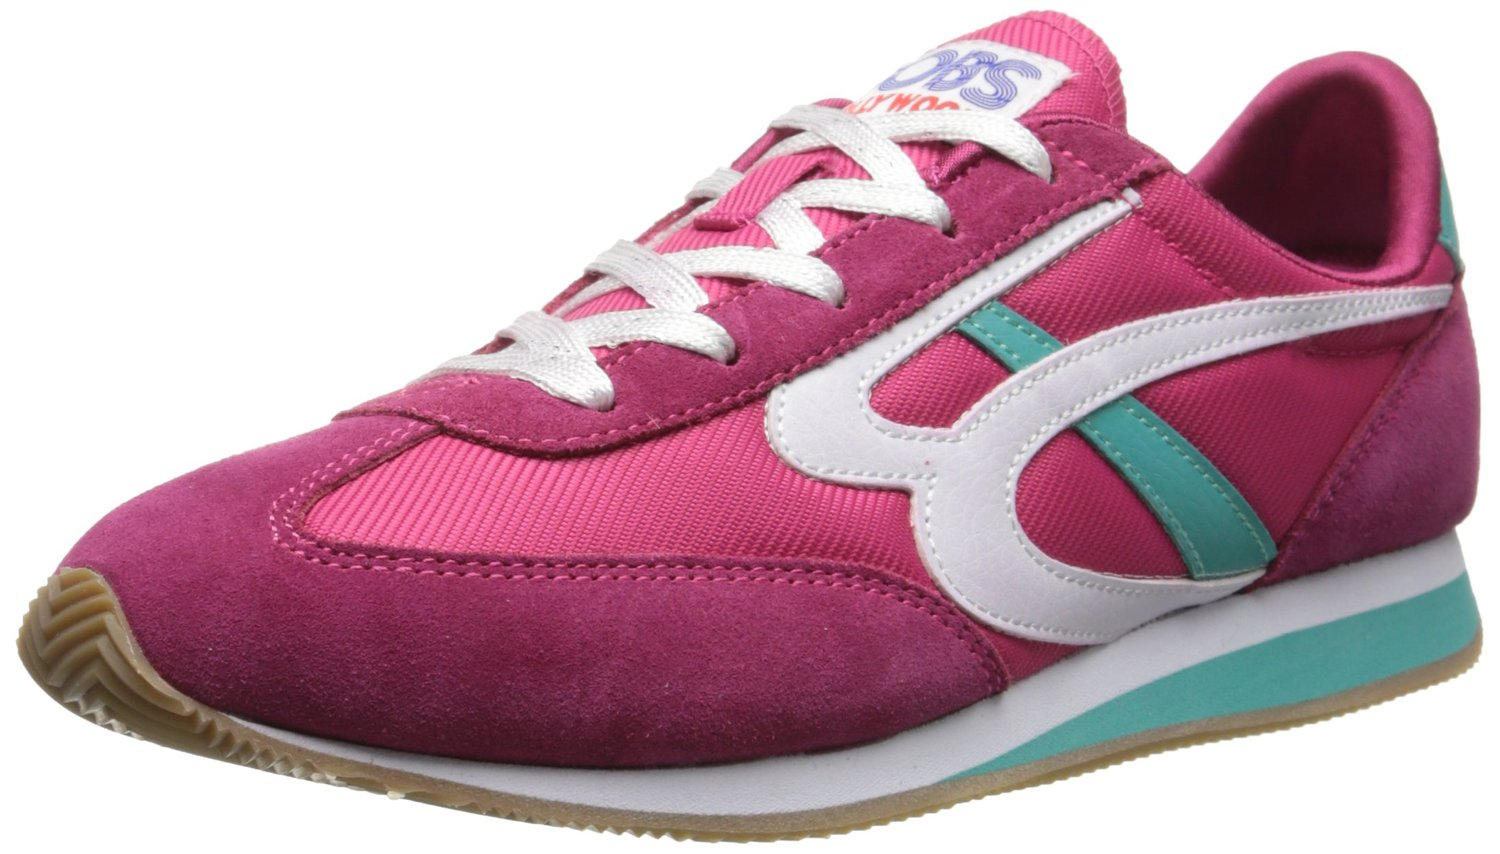 BOBS from Skechers Women's Sunset Fashion Sneaker Retro 80s shoes Memory Foam